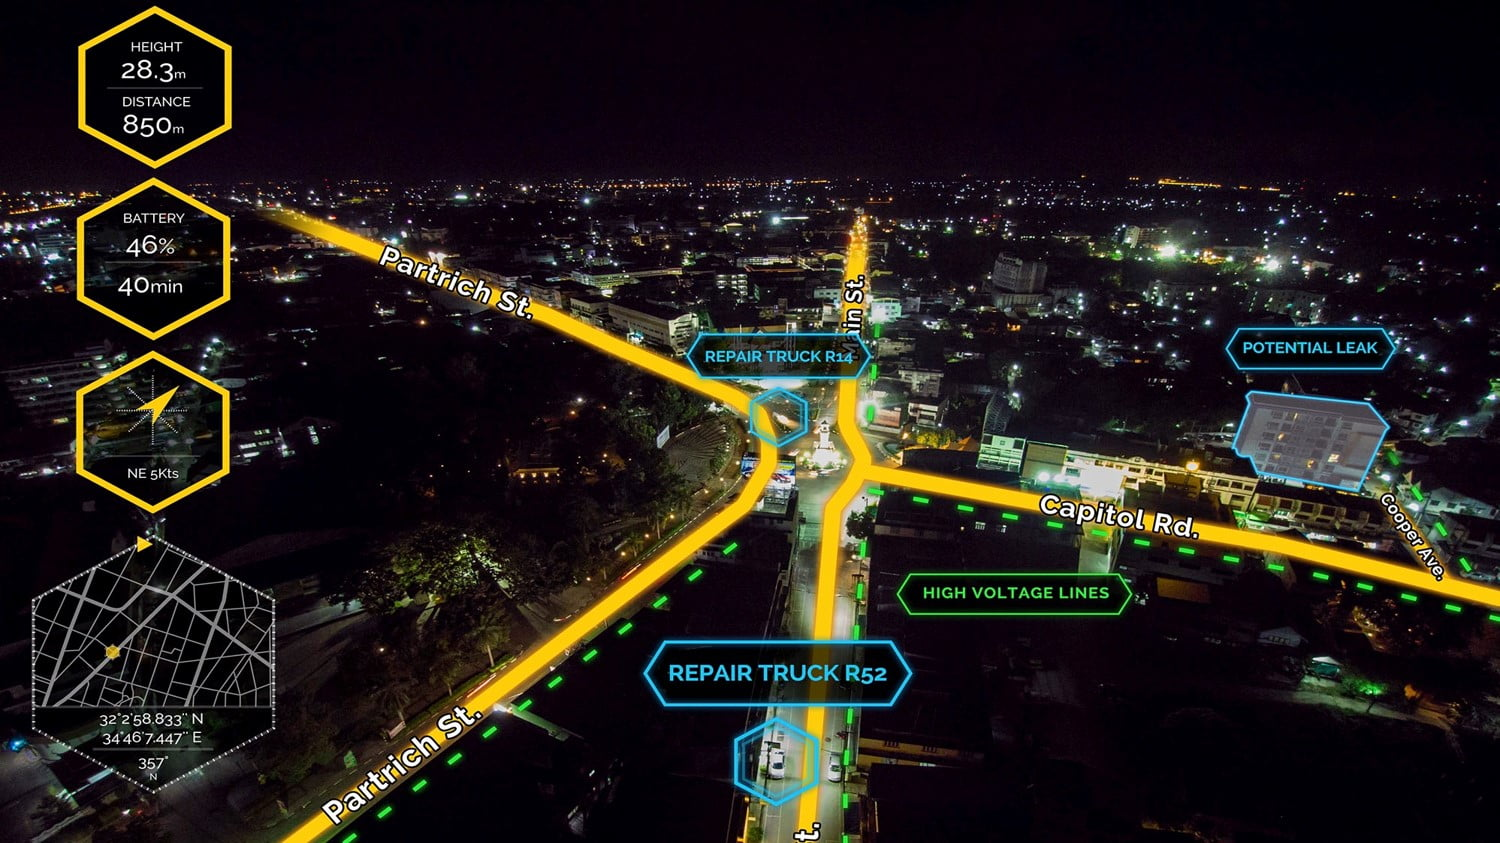 An example of what Edgybees software looks like laid over the image of a city street at night. Courtesy